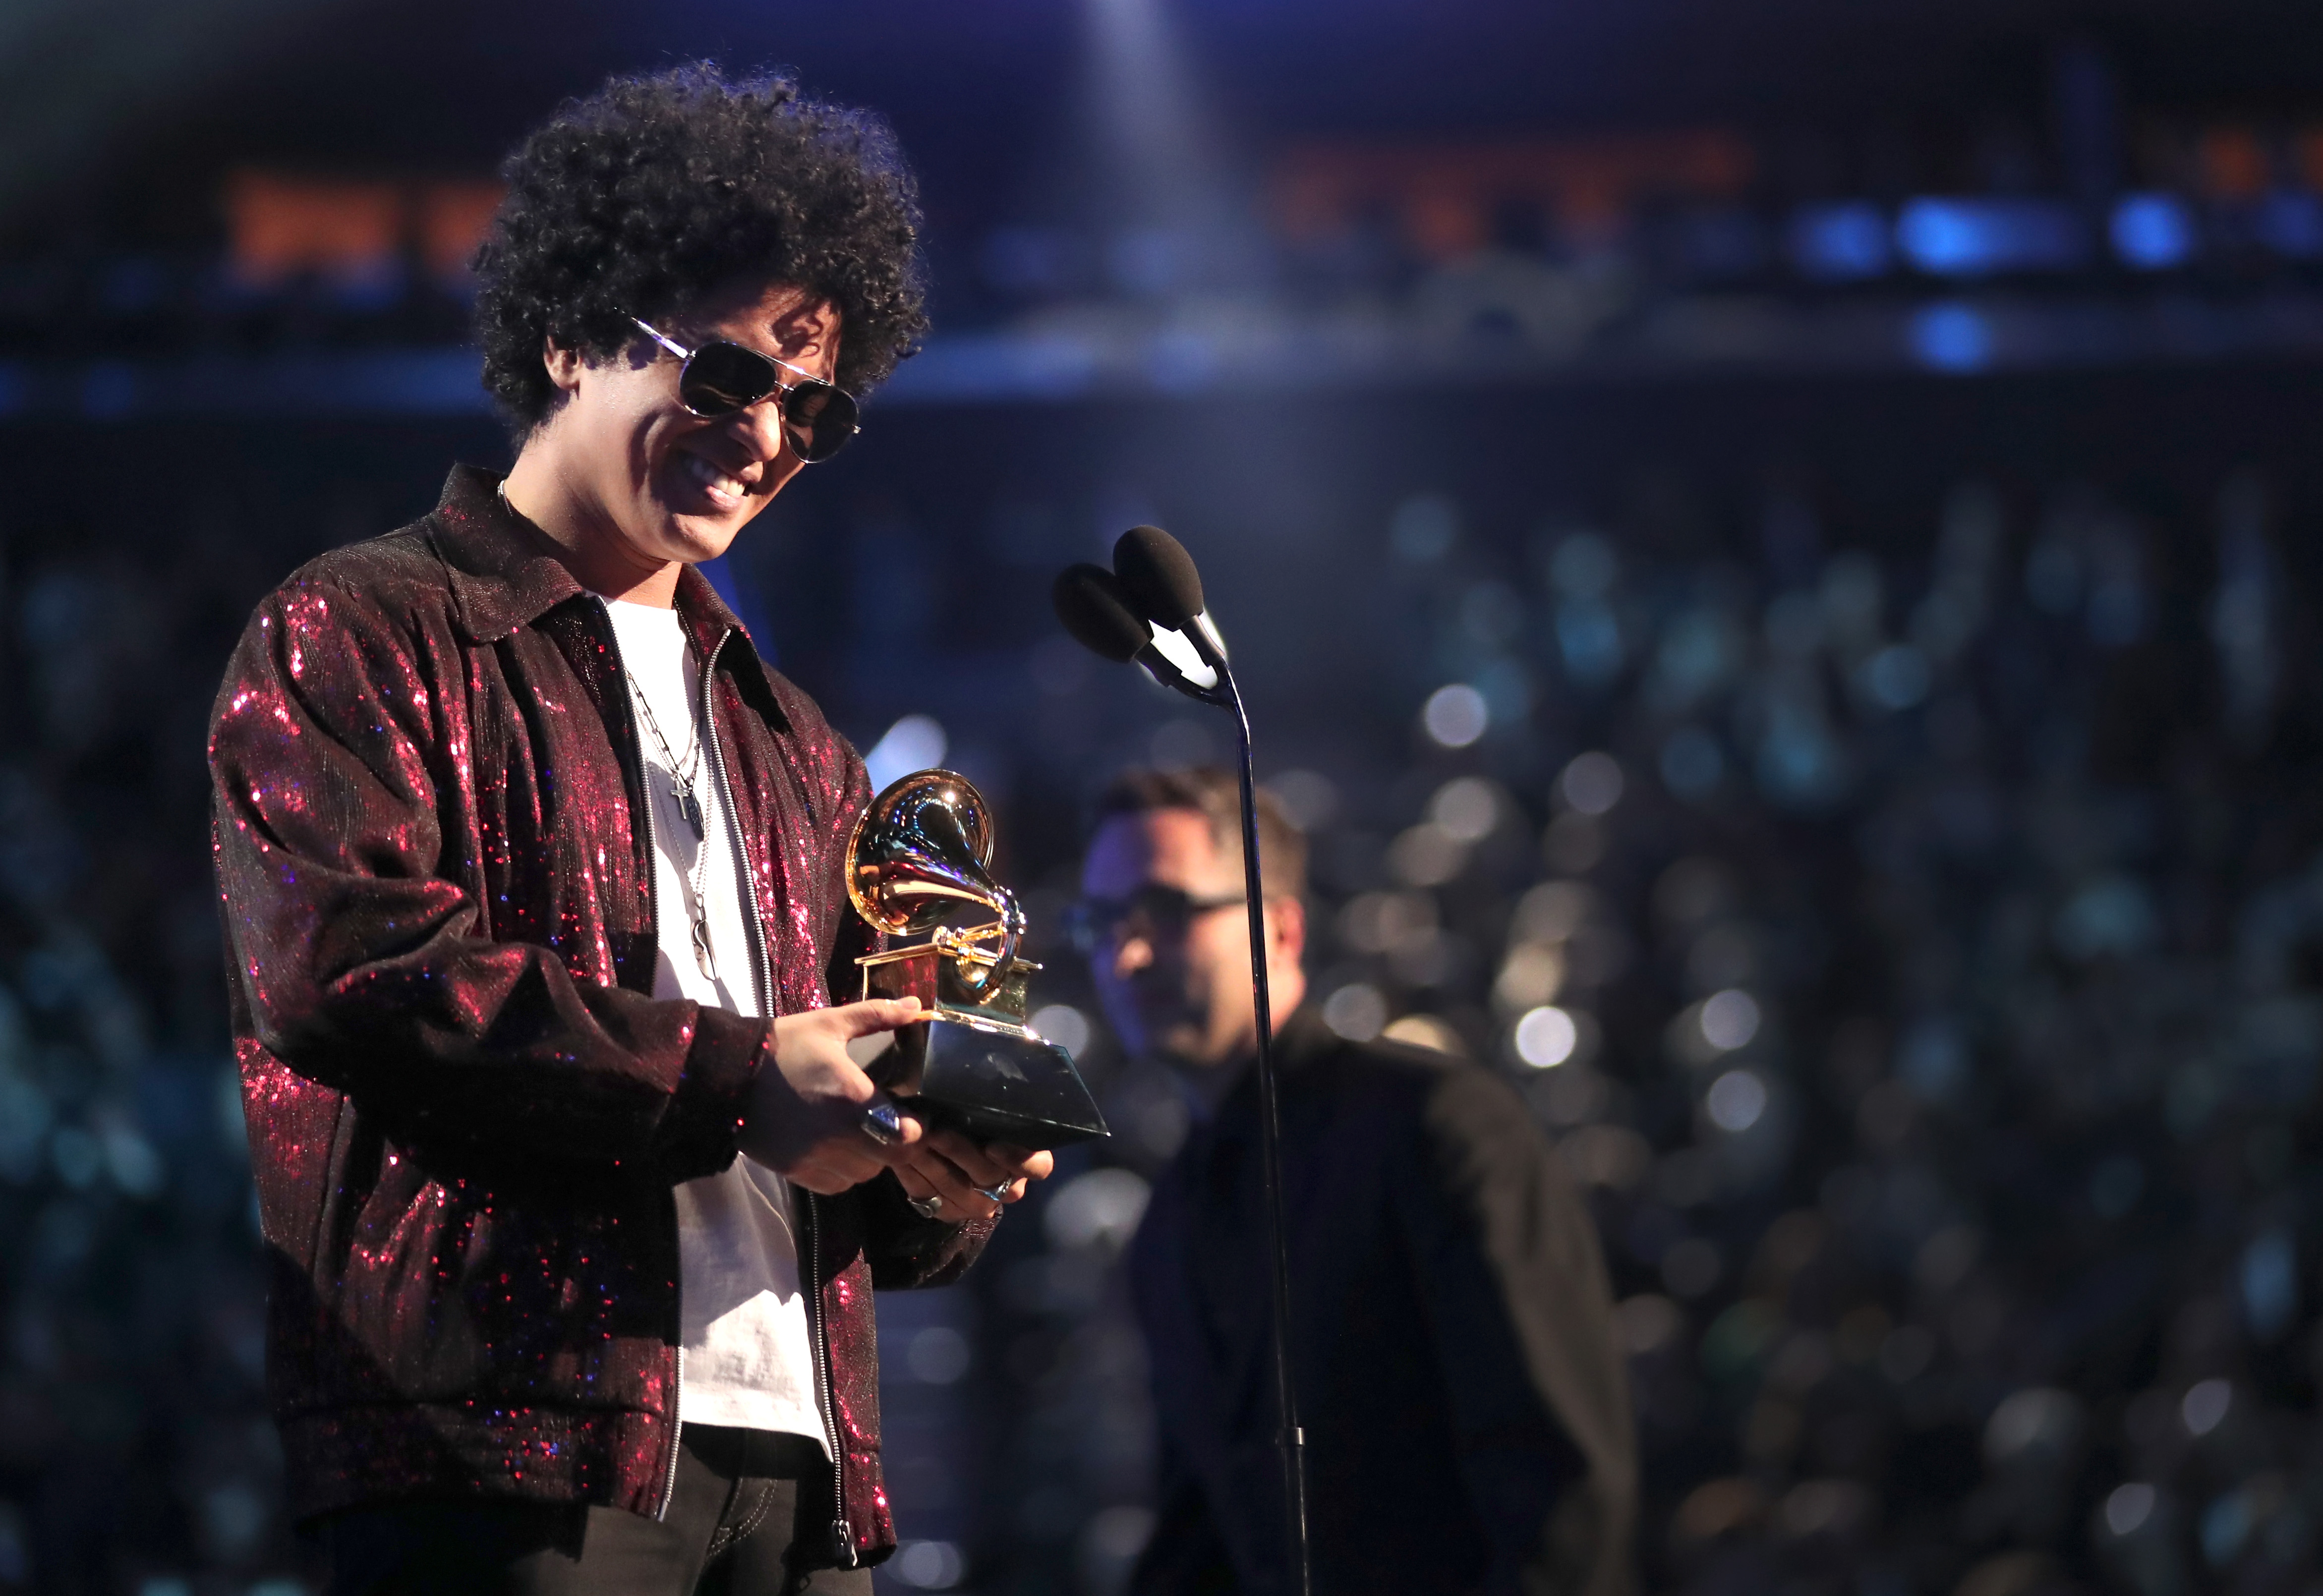 Grammy Awards 2018: the complete winners list - Vox